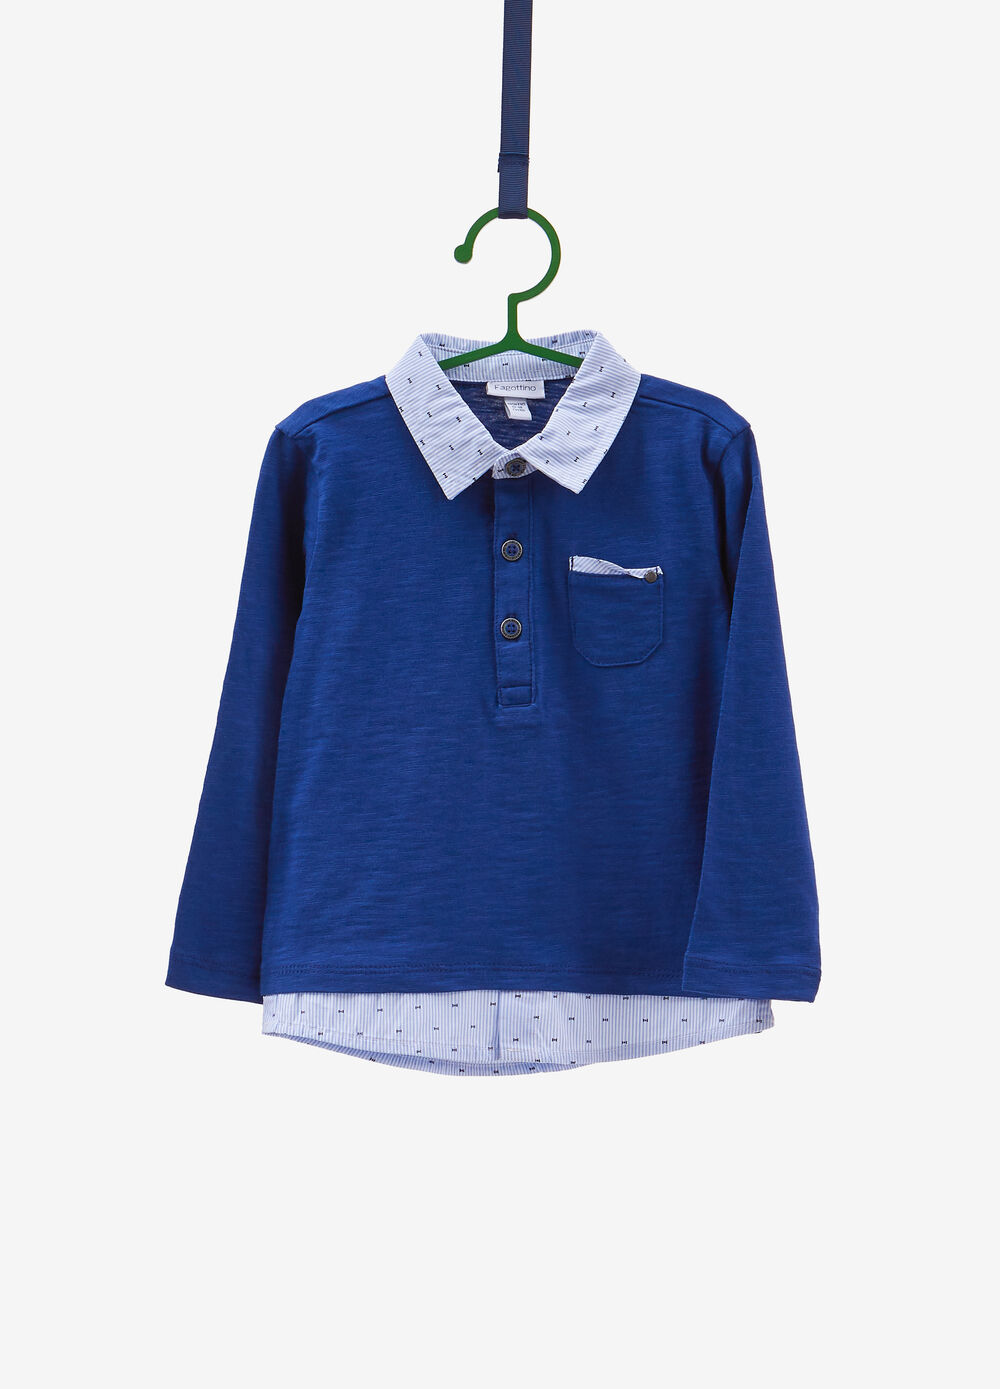 Polo shirt with striped patterned faux layer.